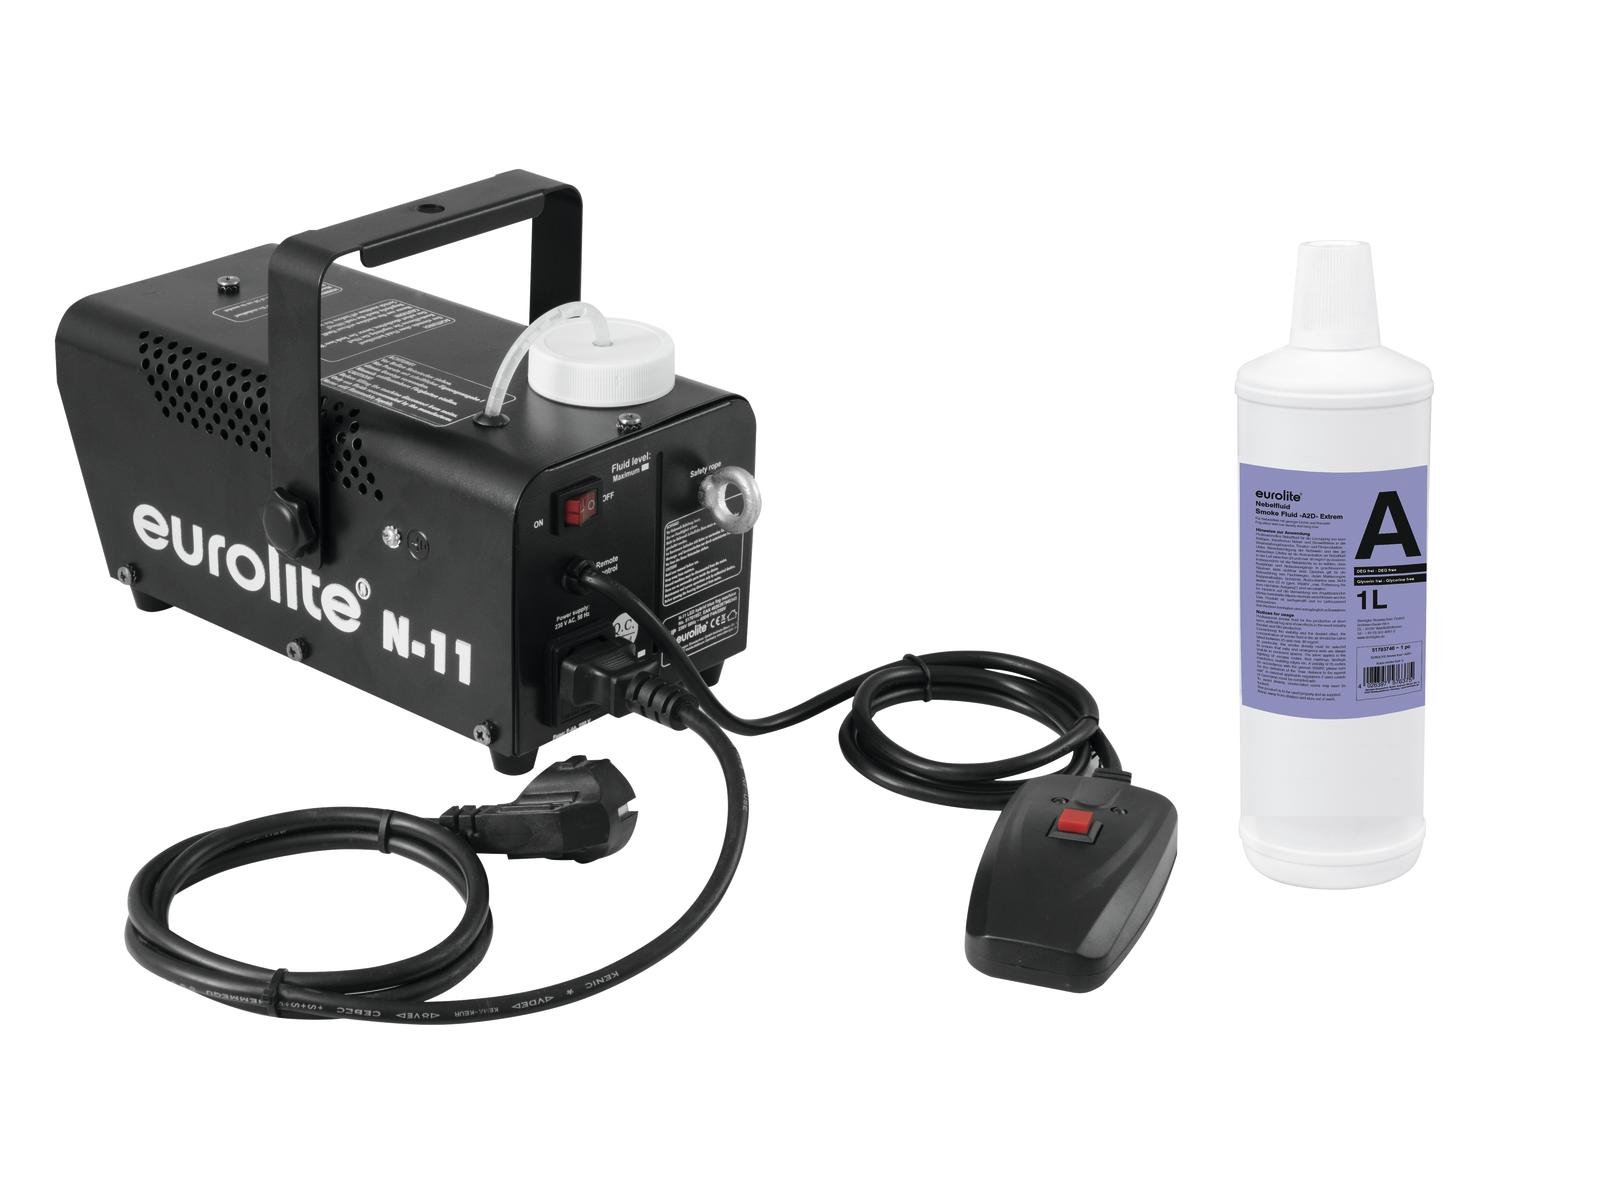 EUROLITE N Set-11 LED Hybrid blue fog machine + A2D Azione di fumo